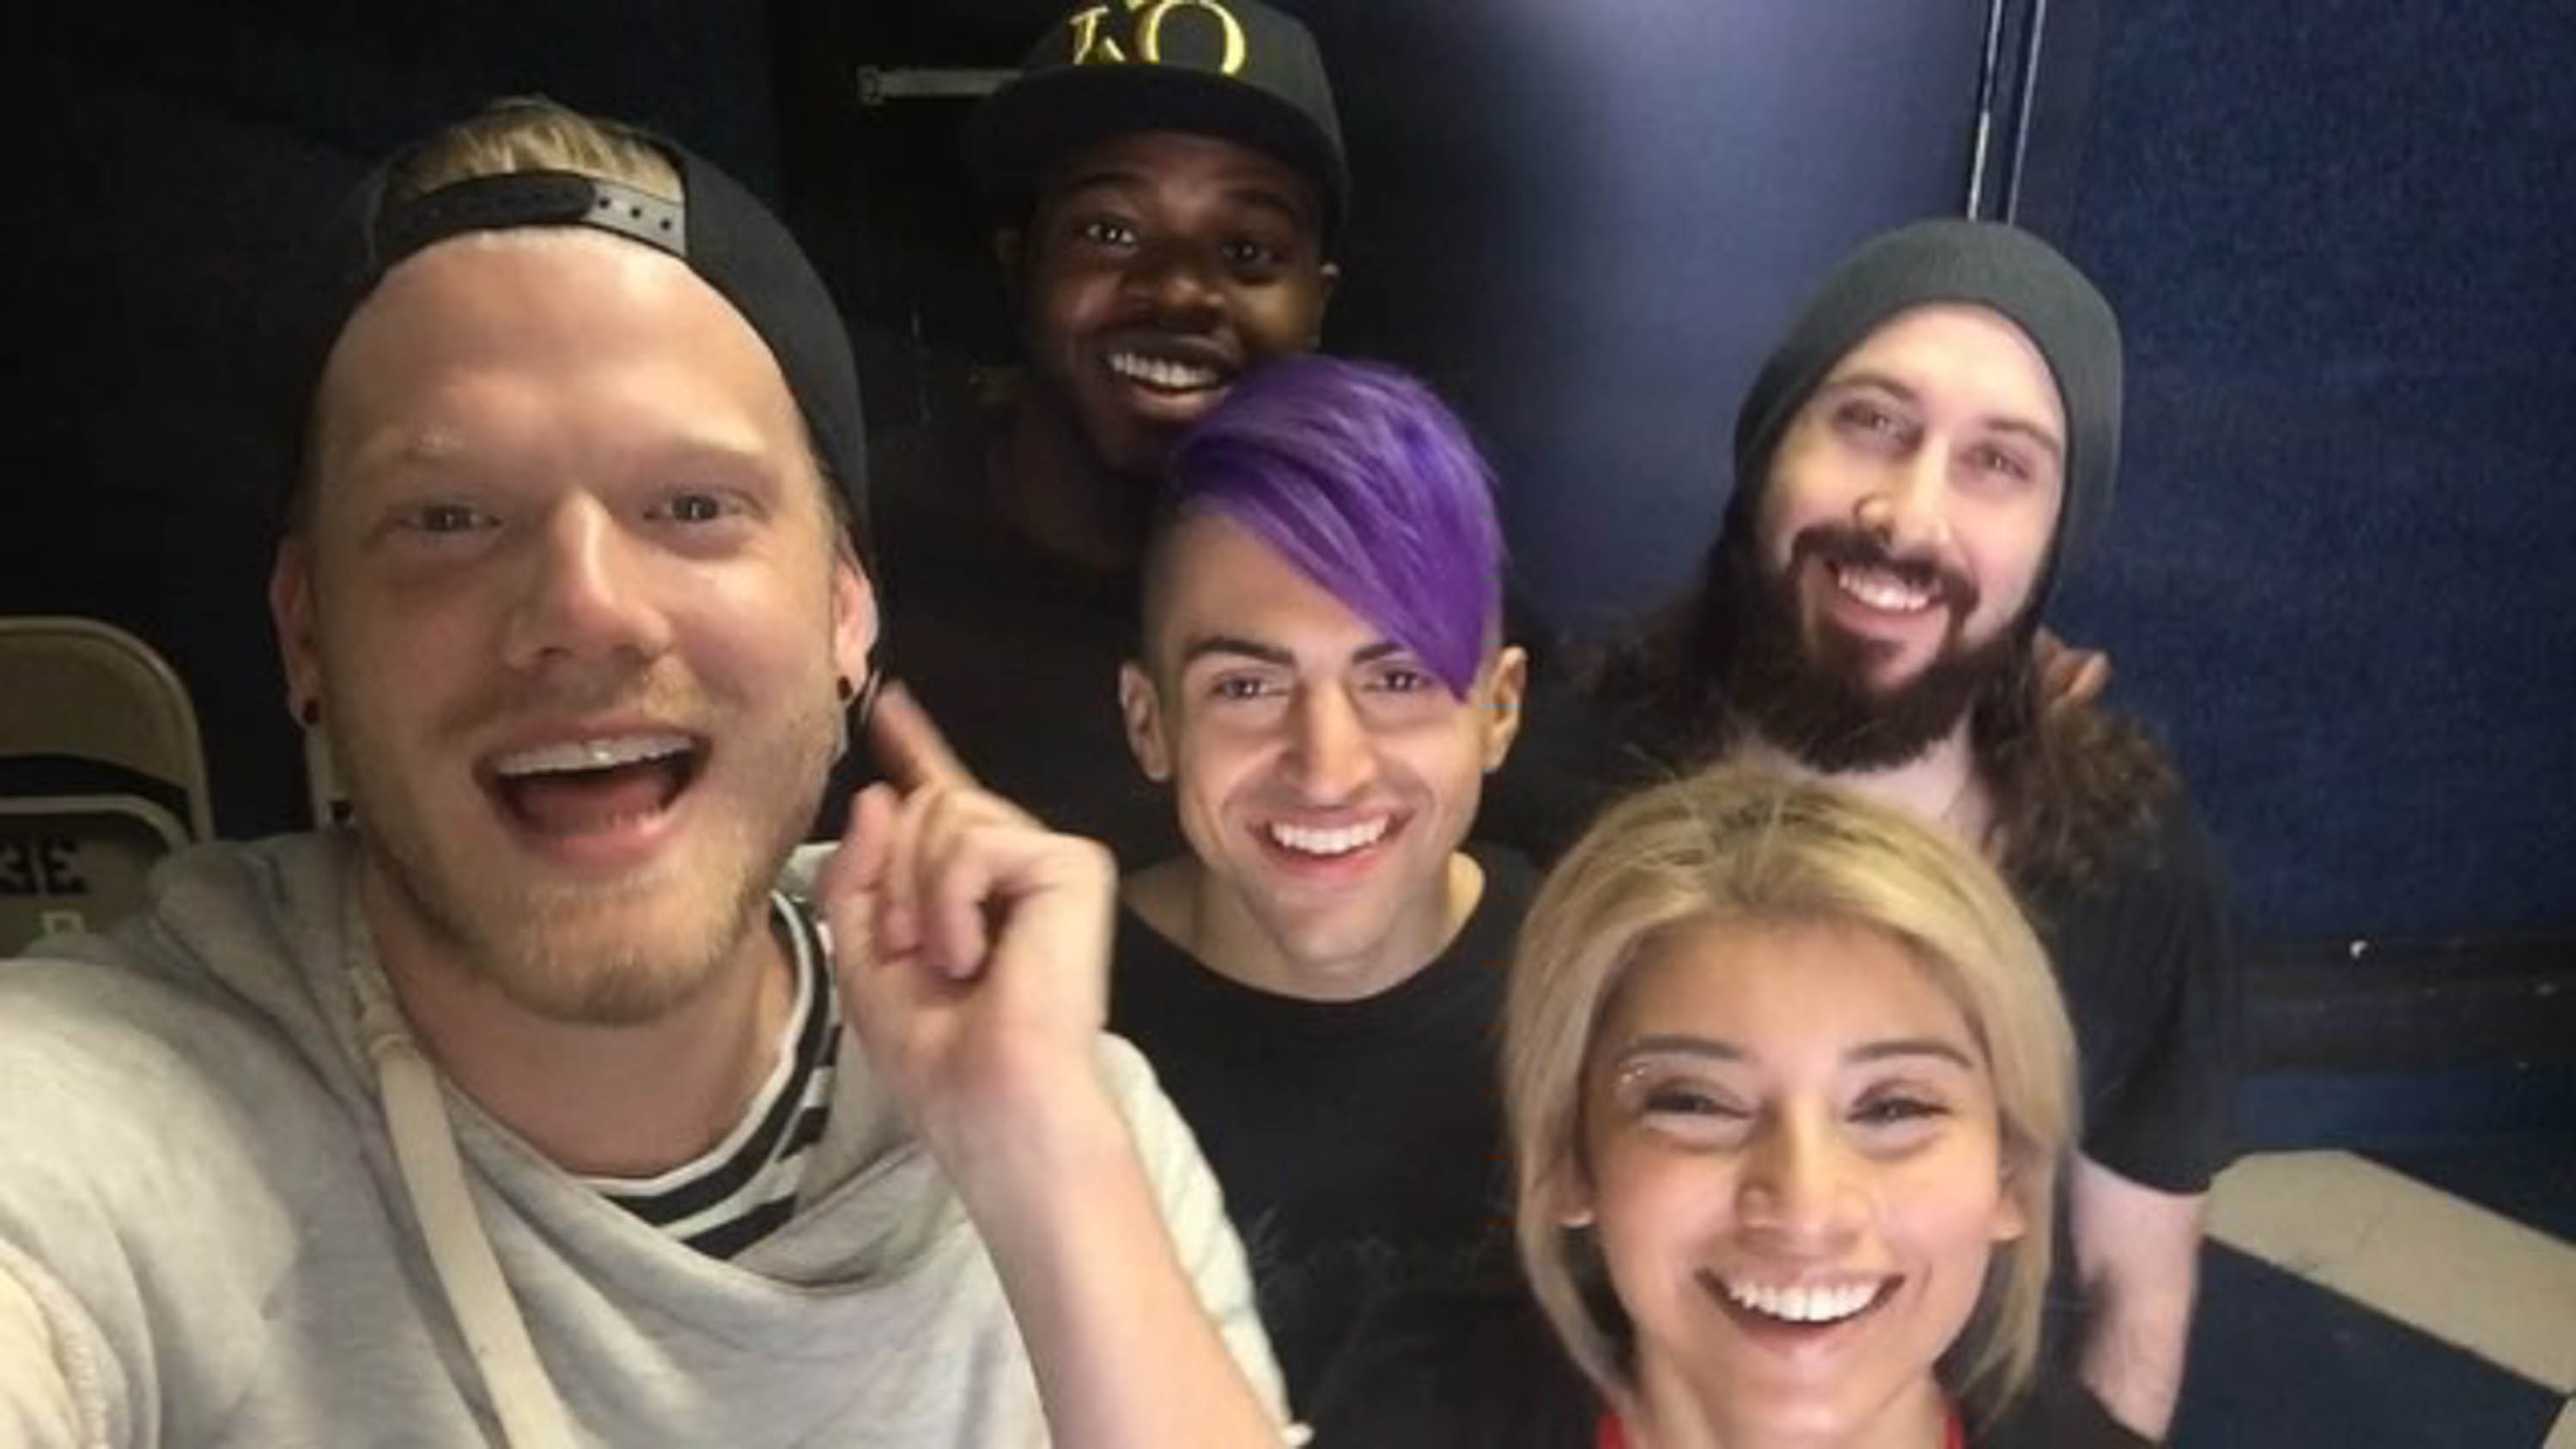 PENTATONIX. The famous a cappella group is heading to Manila in September. Photo by Mike Nelson/EPA